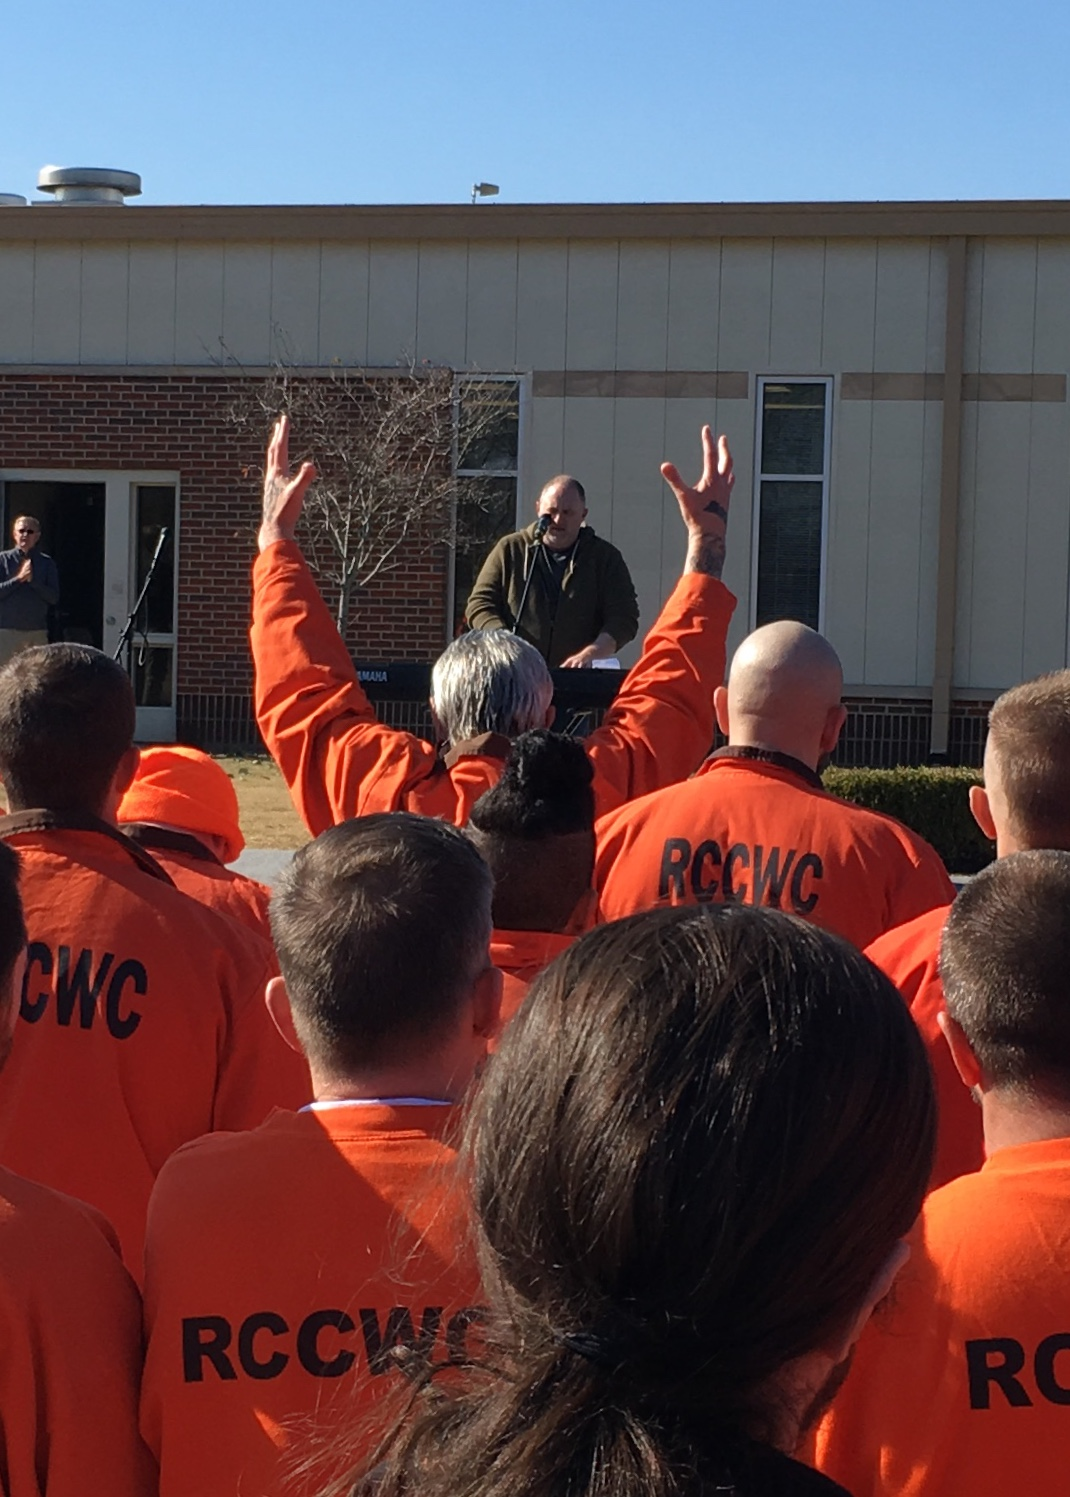 Rutherford County Correctional Work Center (RCCWC) recently partnered with New Vision Baptist Church of Murfreesboro to provide inmates with an inspirational event featuring local and national speakers and Christian artists.